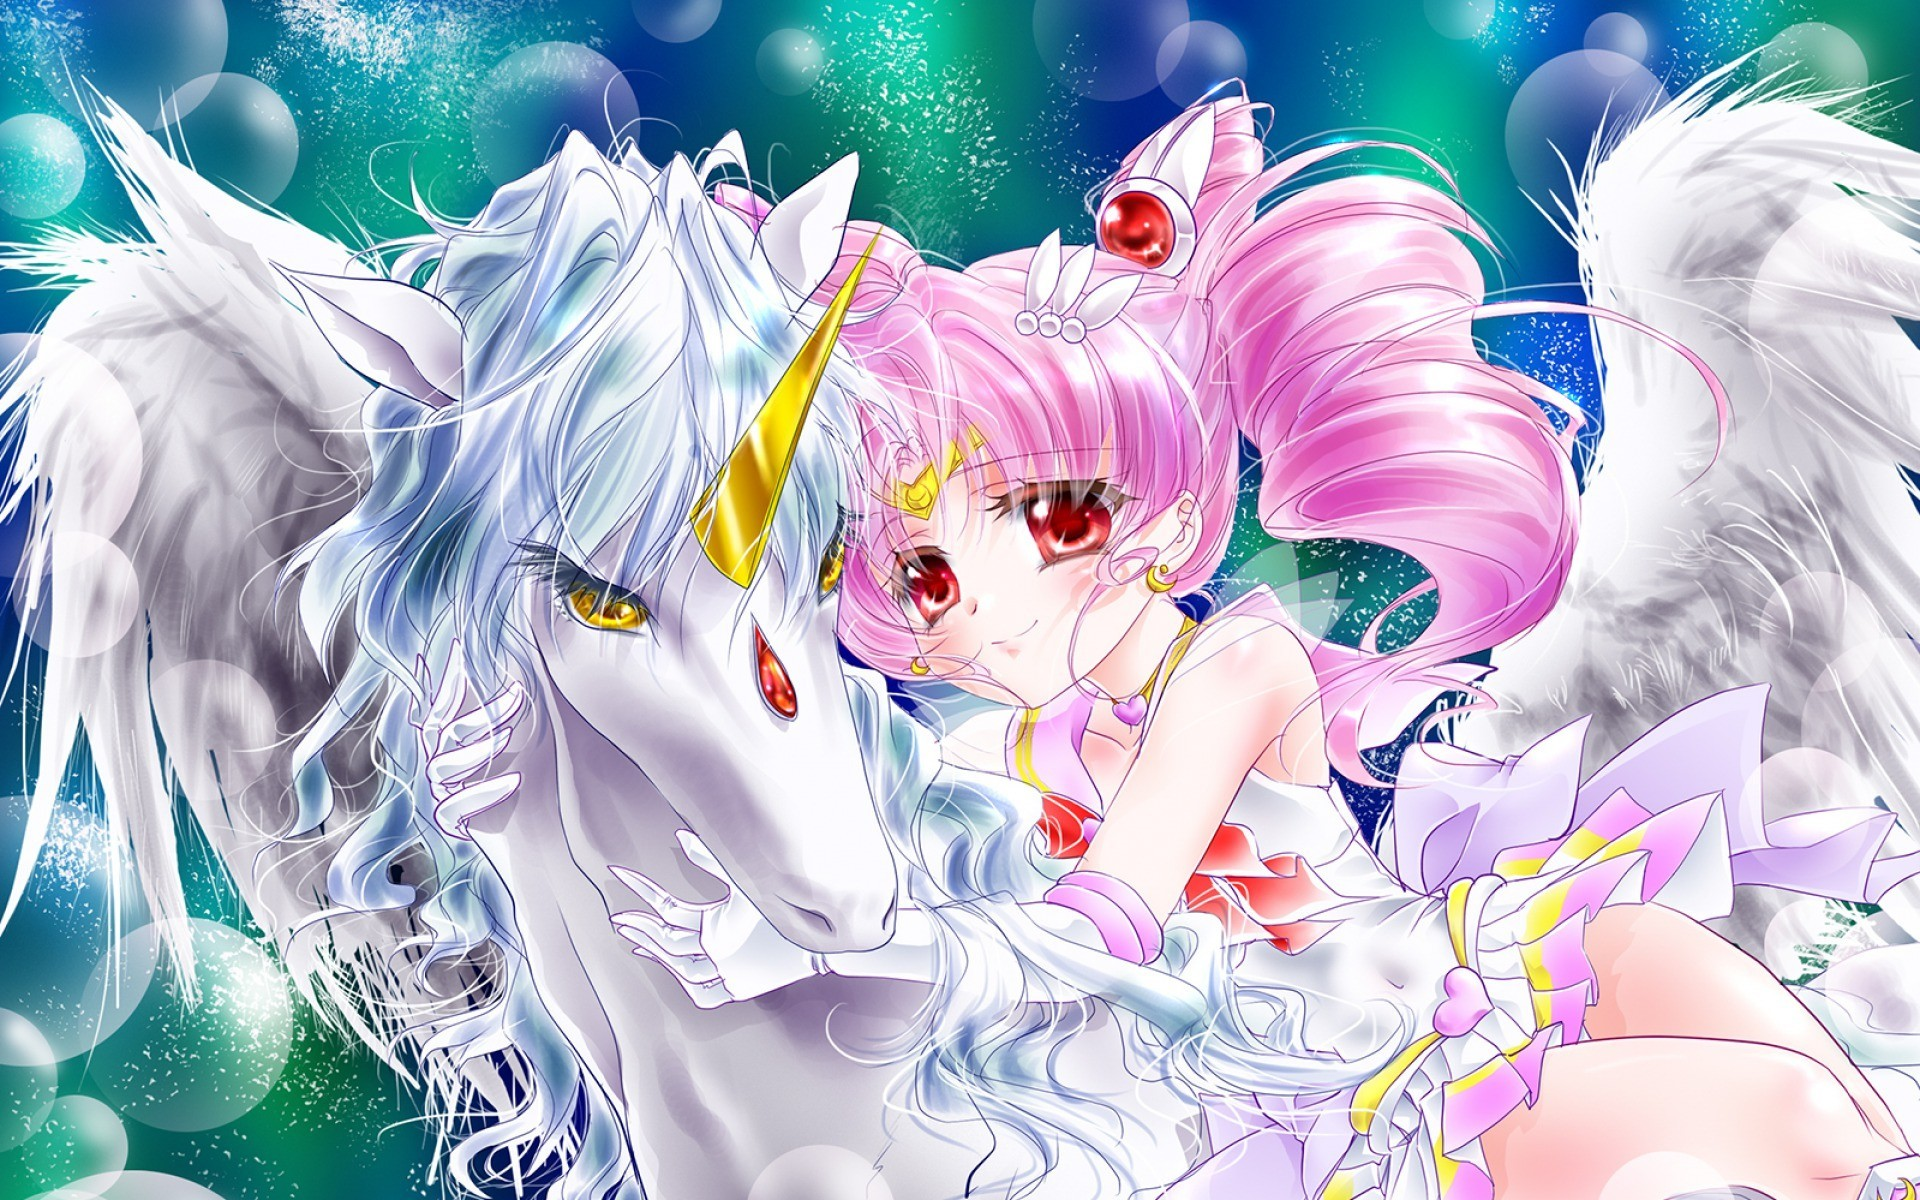 Res: 1920x1200,  Anime Unicorn - Wallpaper, High Definition, High Quality,  Widescreen